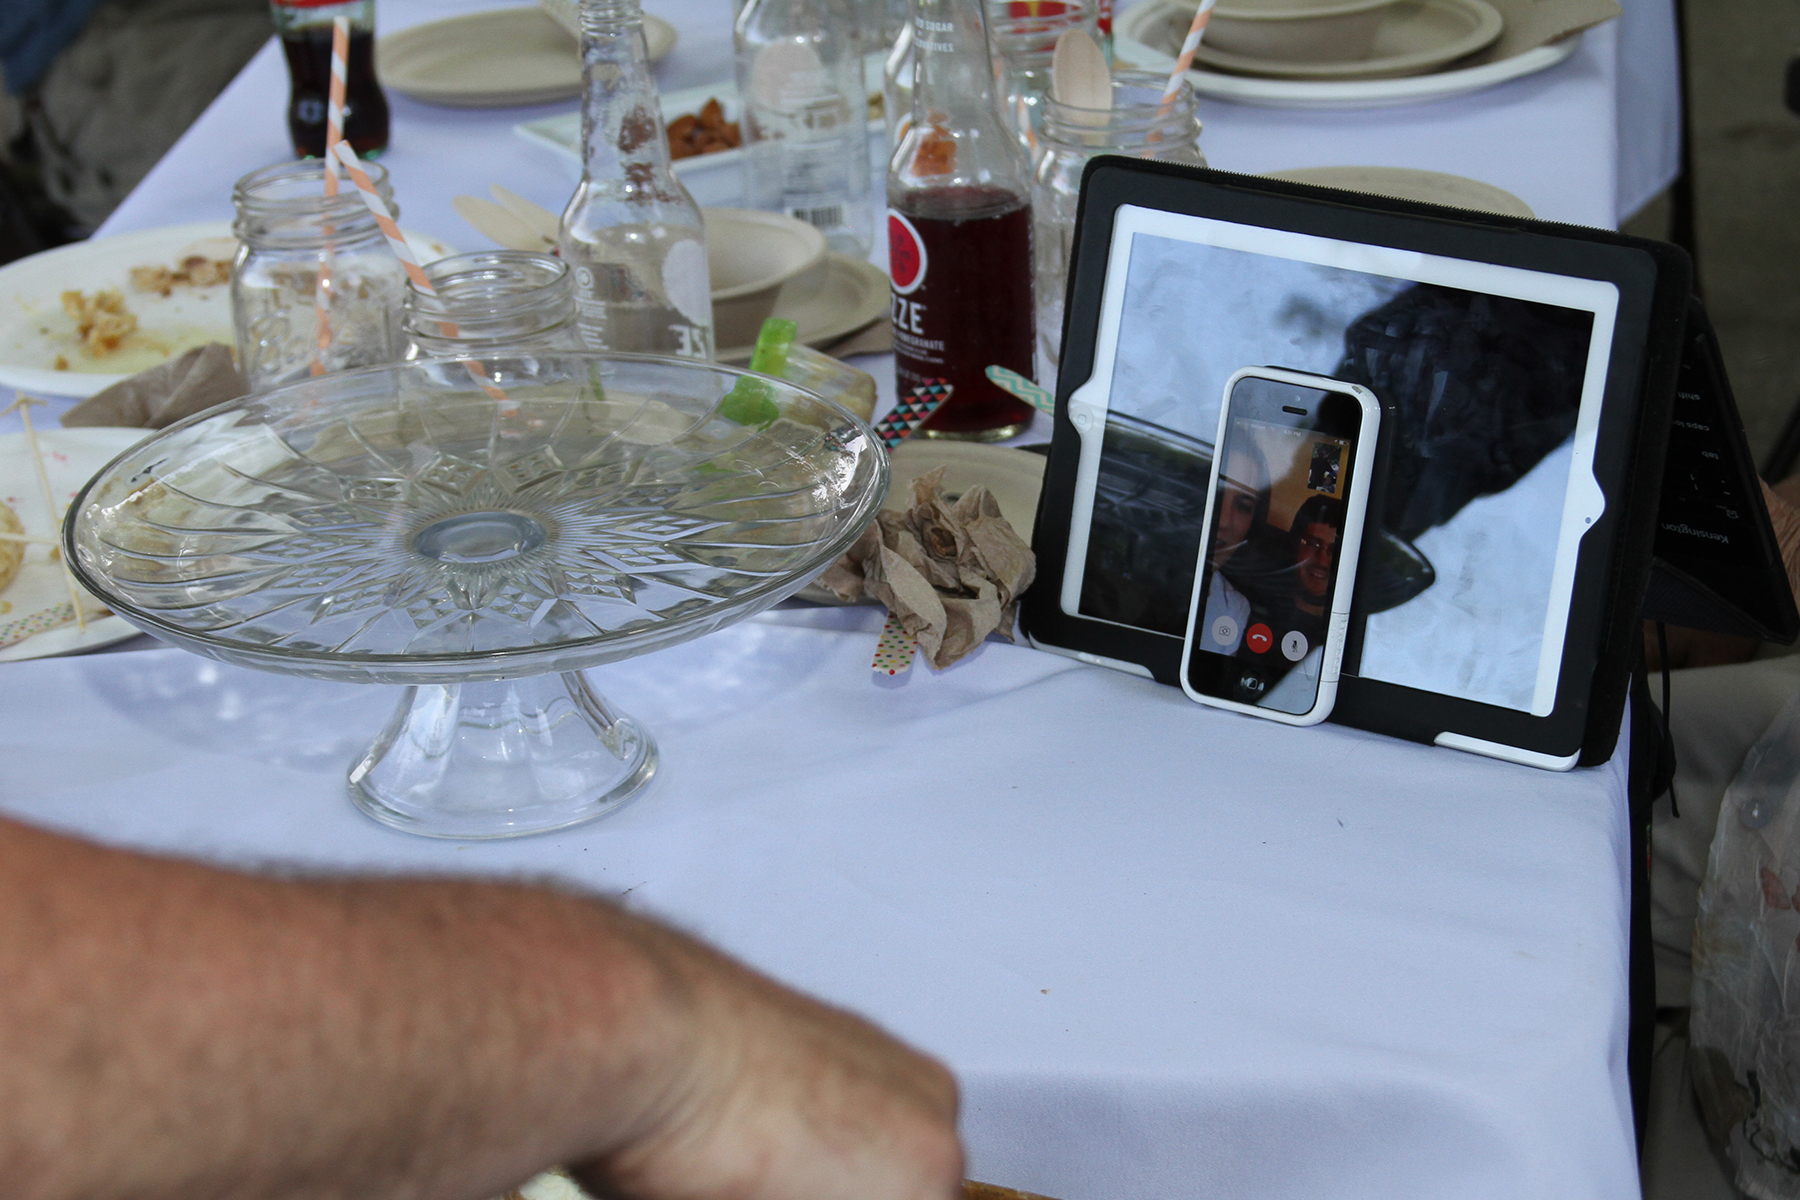 FaceTime with long distance relatives during a milestone birthday | thelovelylauralife.com